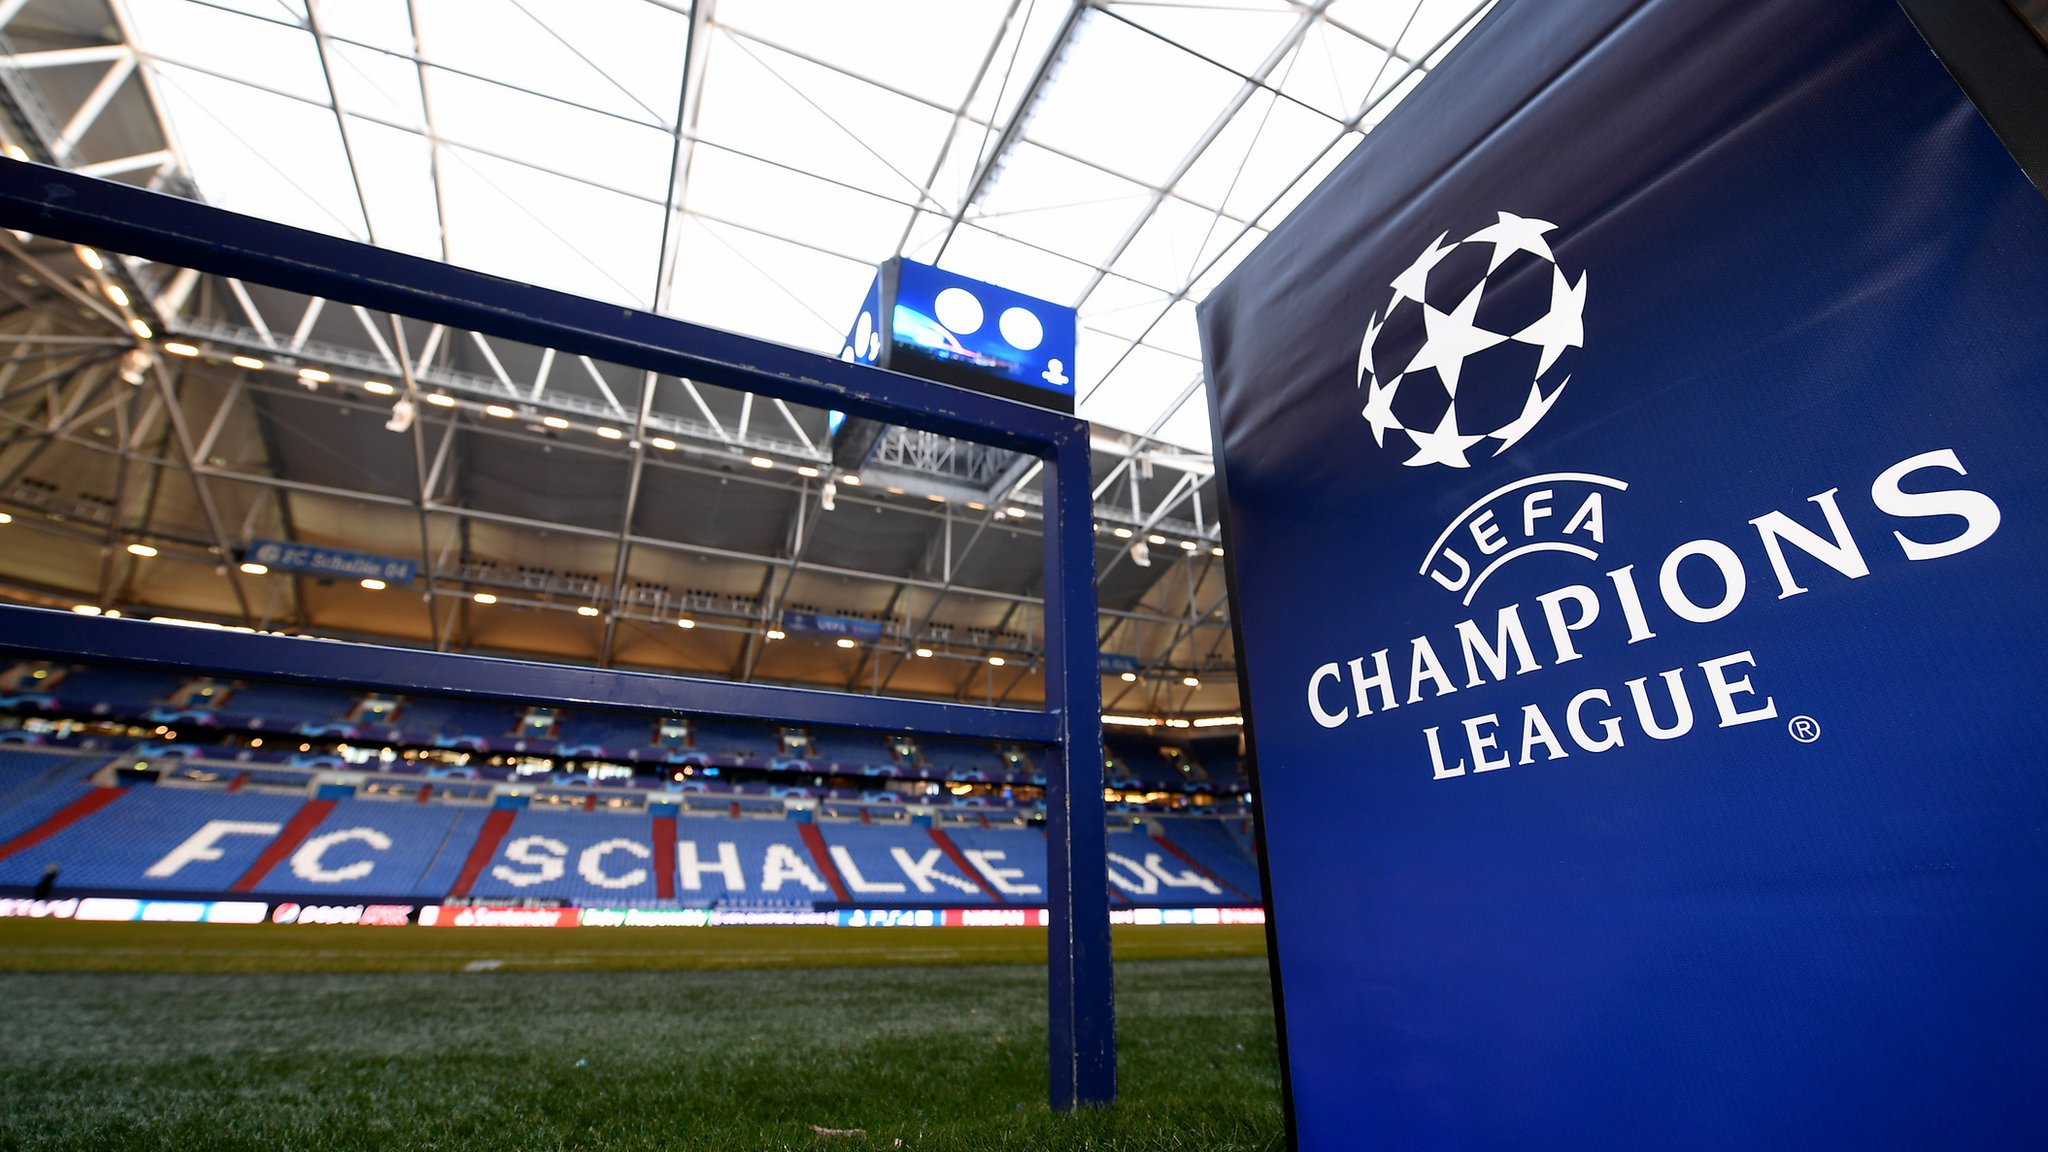 Man City fan in critical condition following assault after Schalke game